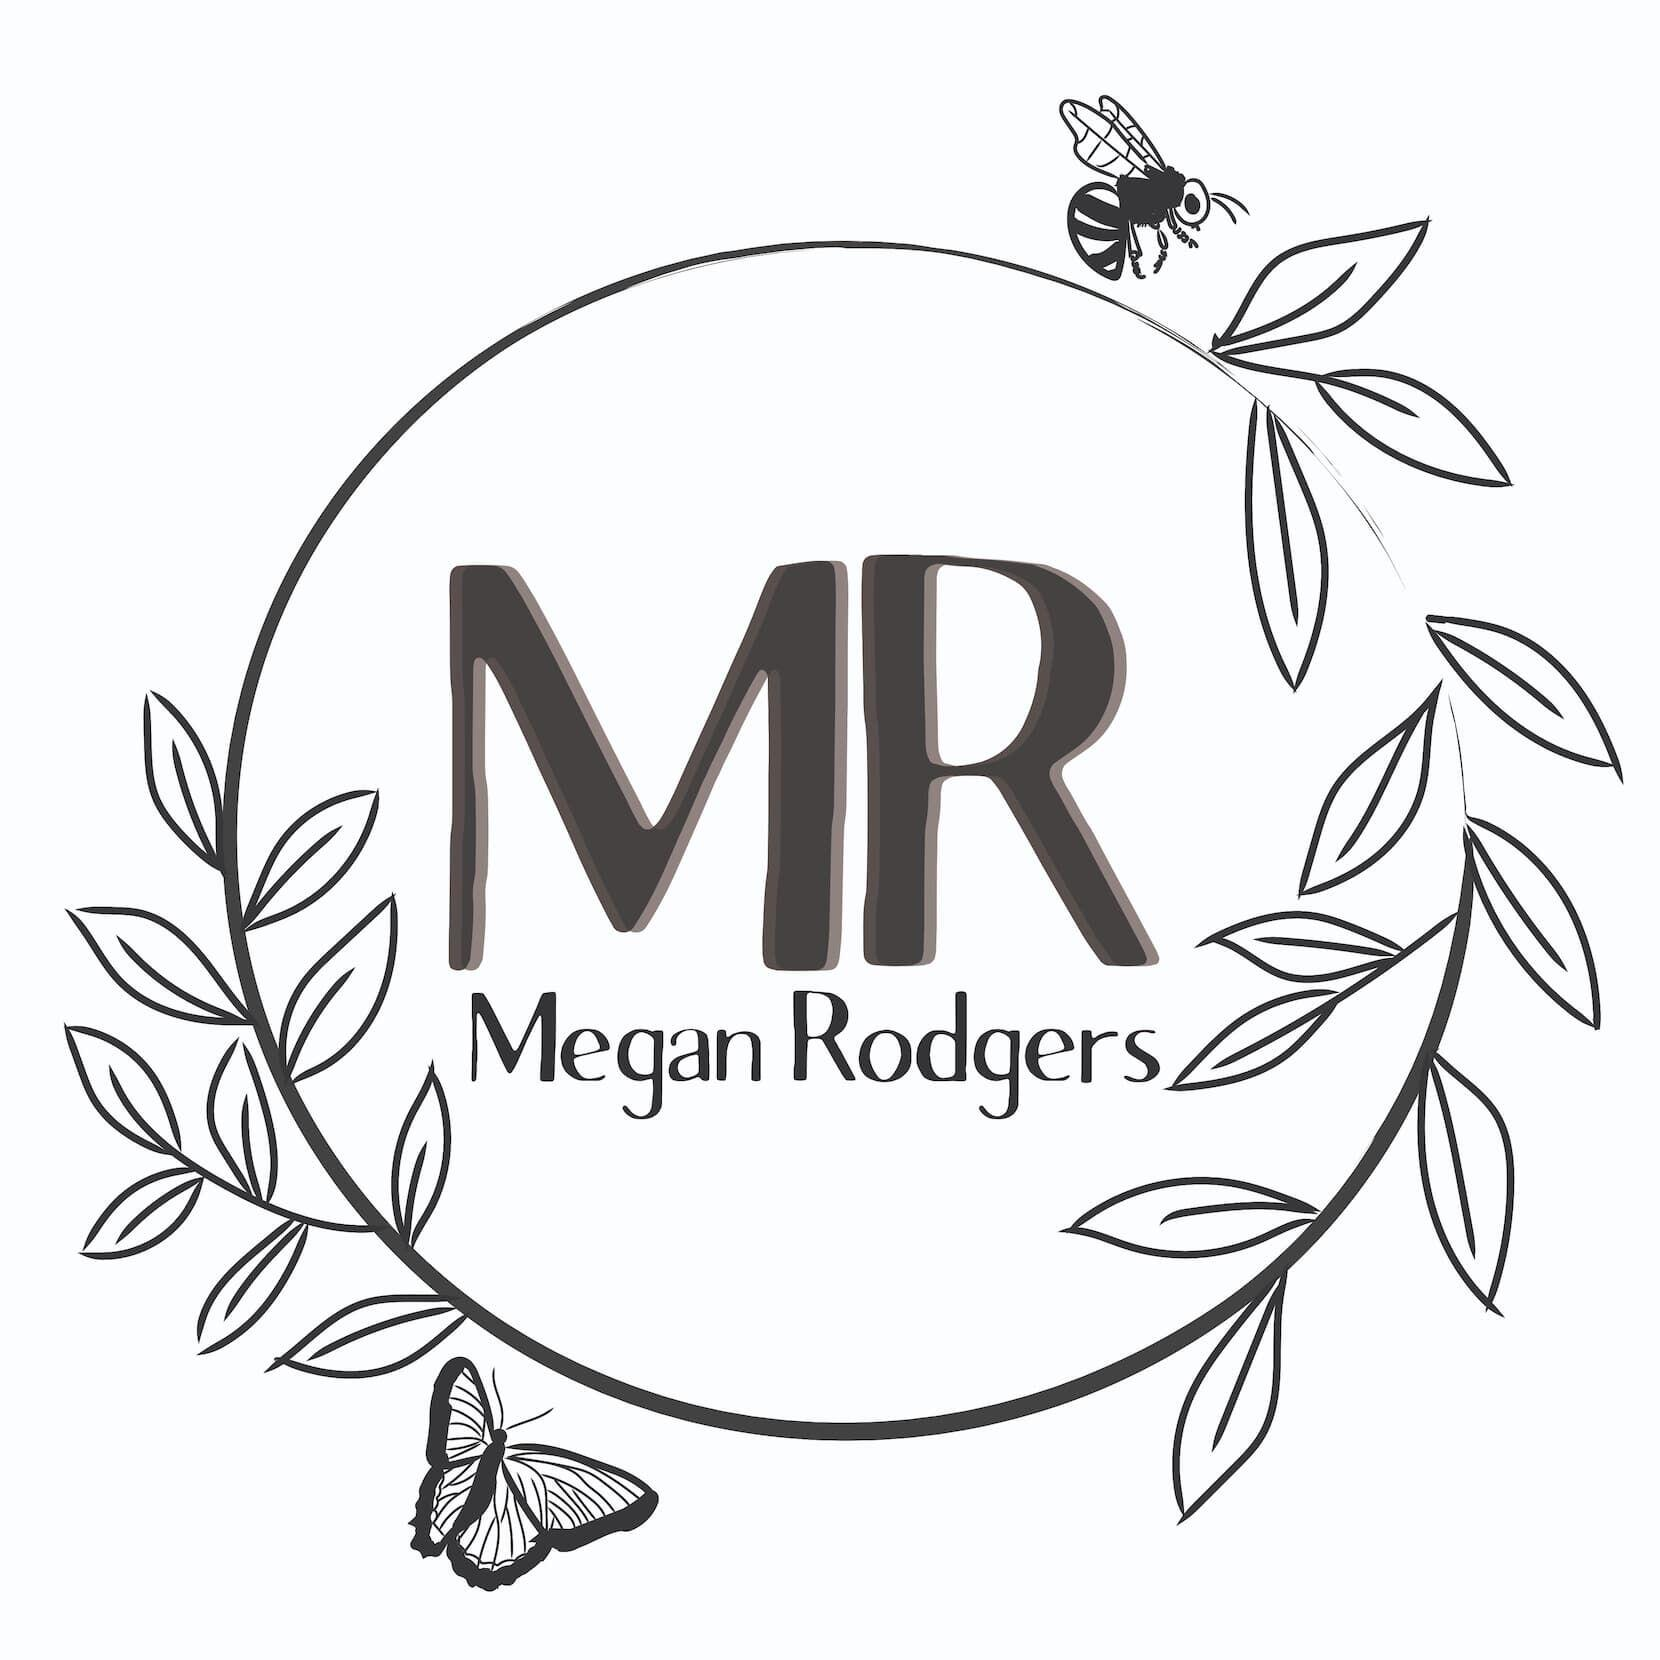 Megan Rodgers logo: 'MR' centered in an incomplete circle, with greenery growing out of the circle's broken ends, and a bee and butterfly visiting each.